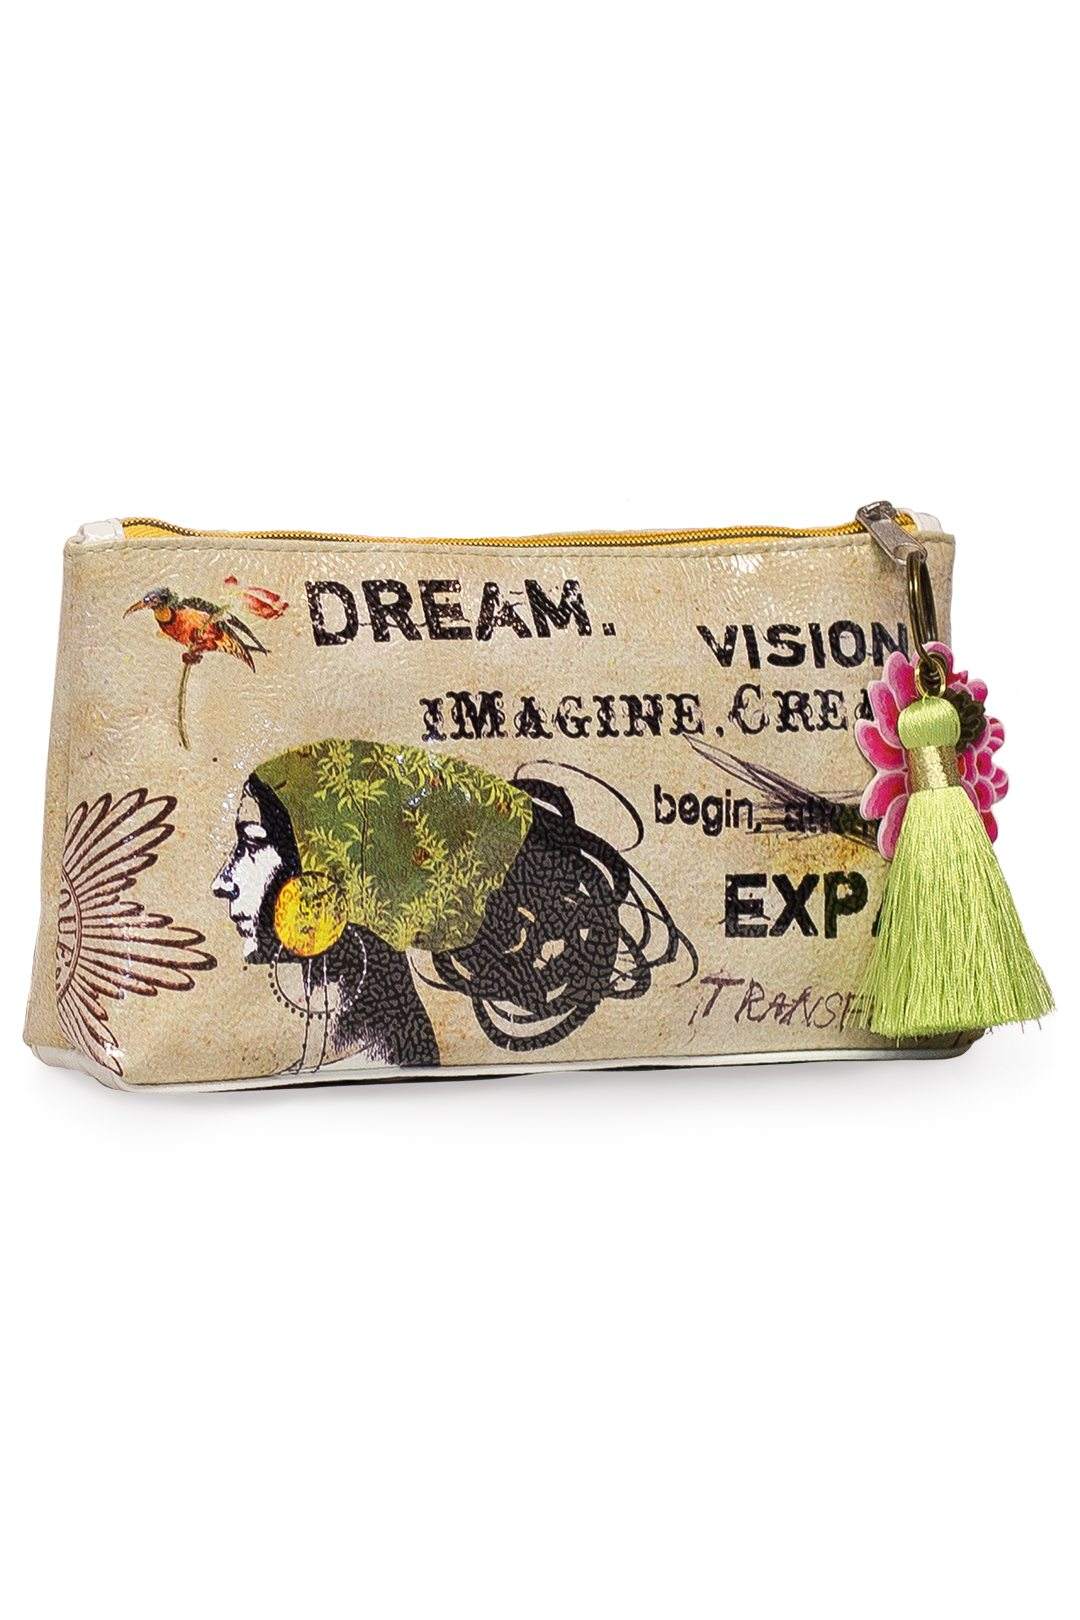 SMALL ACCESSORY POUCH-DREAM